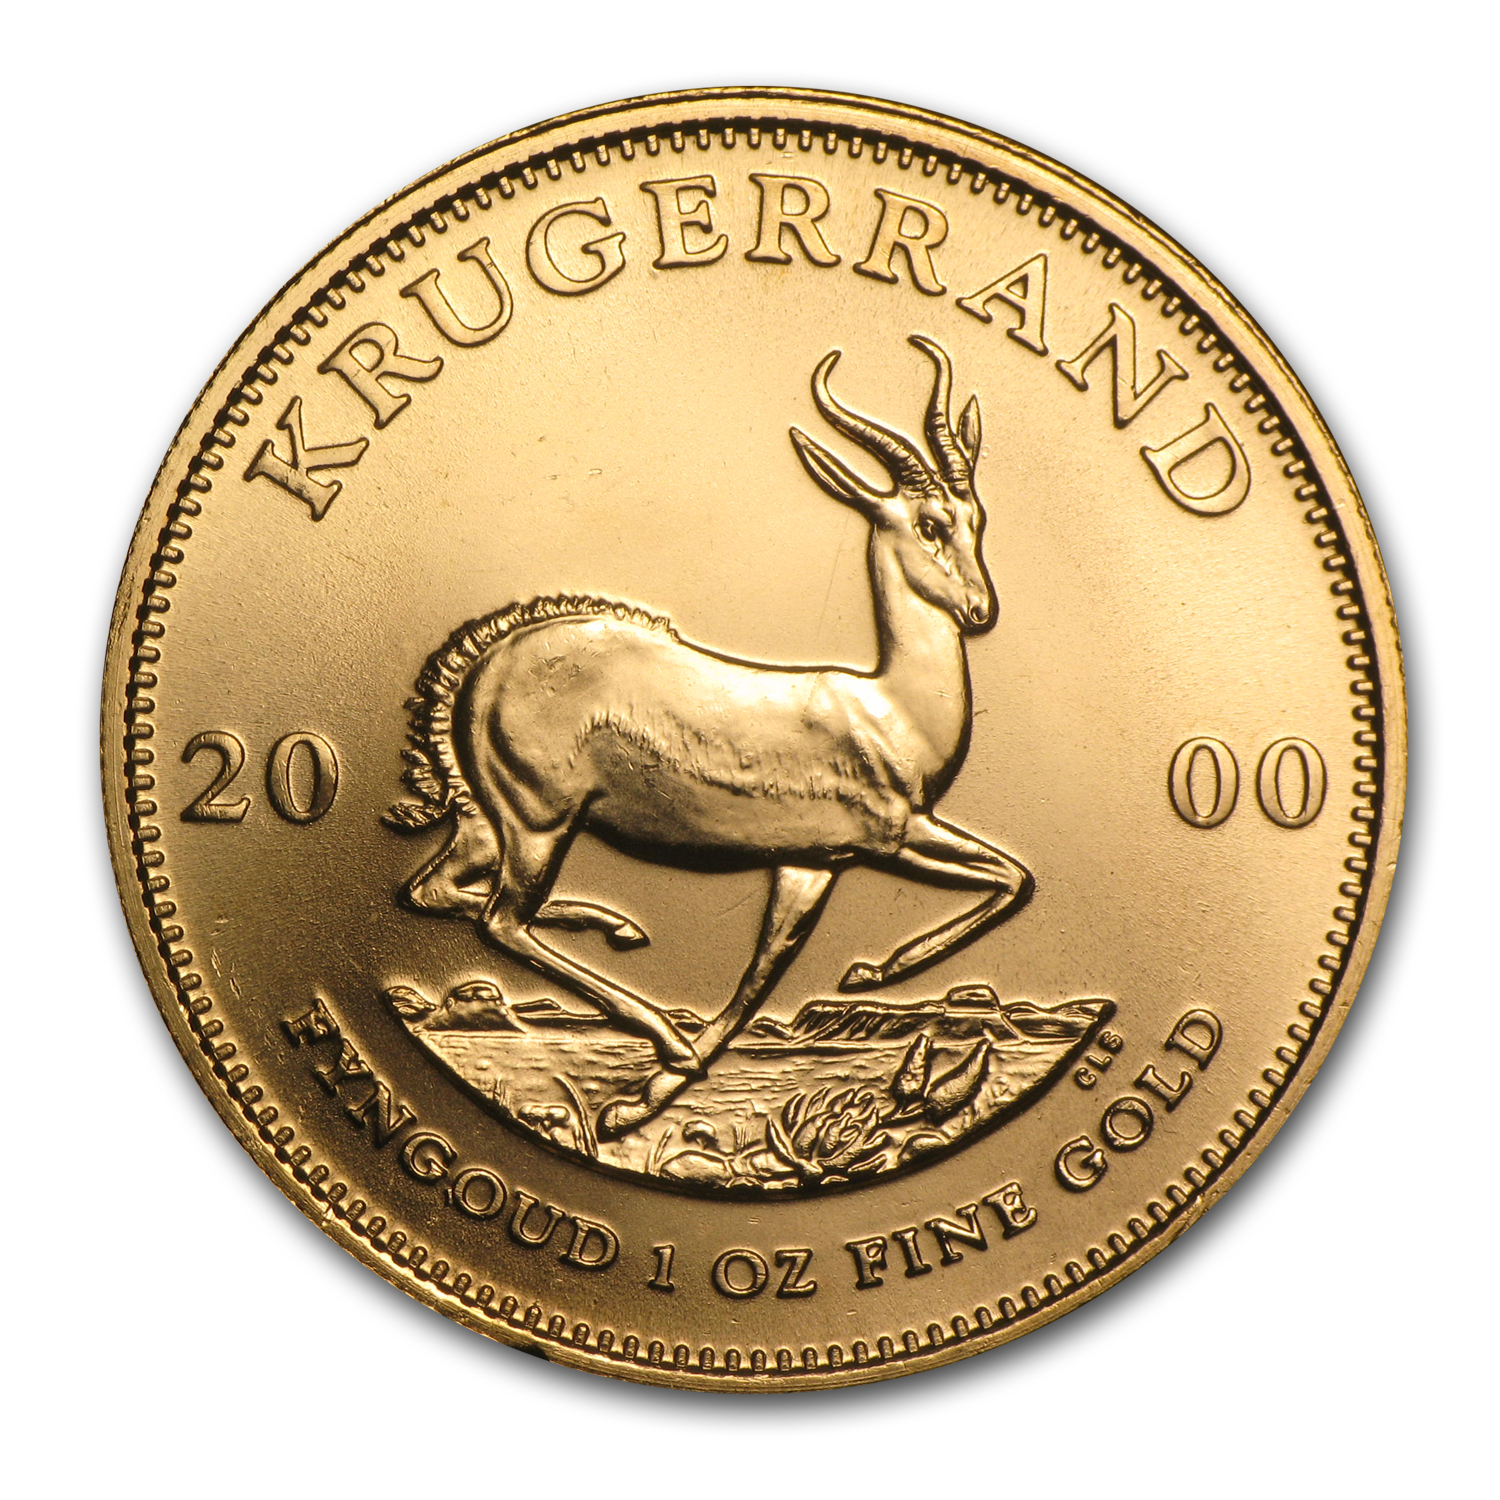 2000 South Africa 1 oz Gold Krugerrand